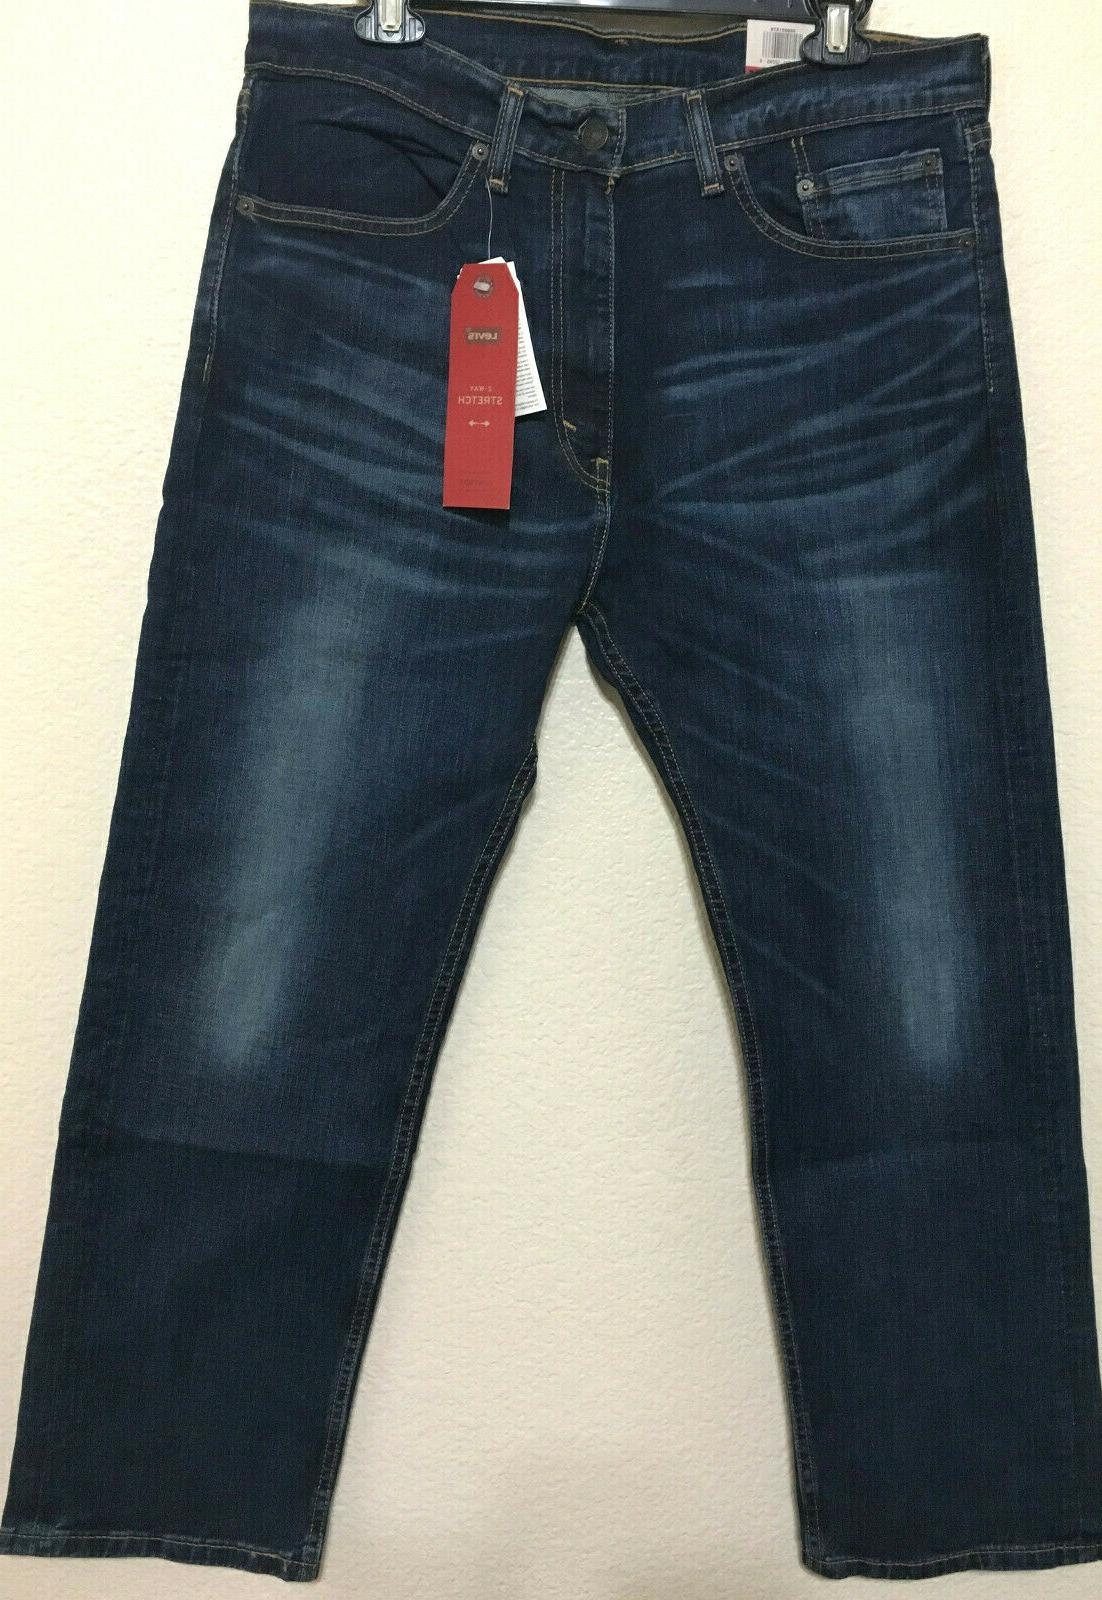 NWT - 1579 REGULAR FIT STRAIGHT STRETCH JEANS PANT